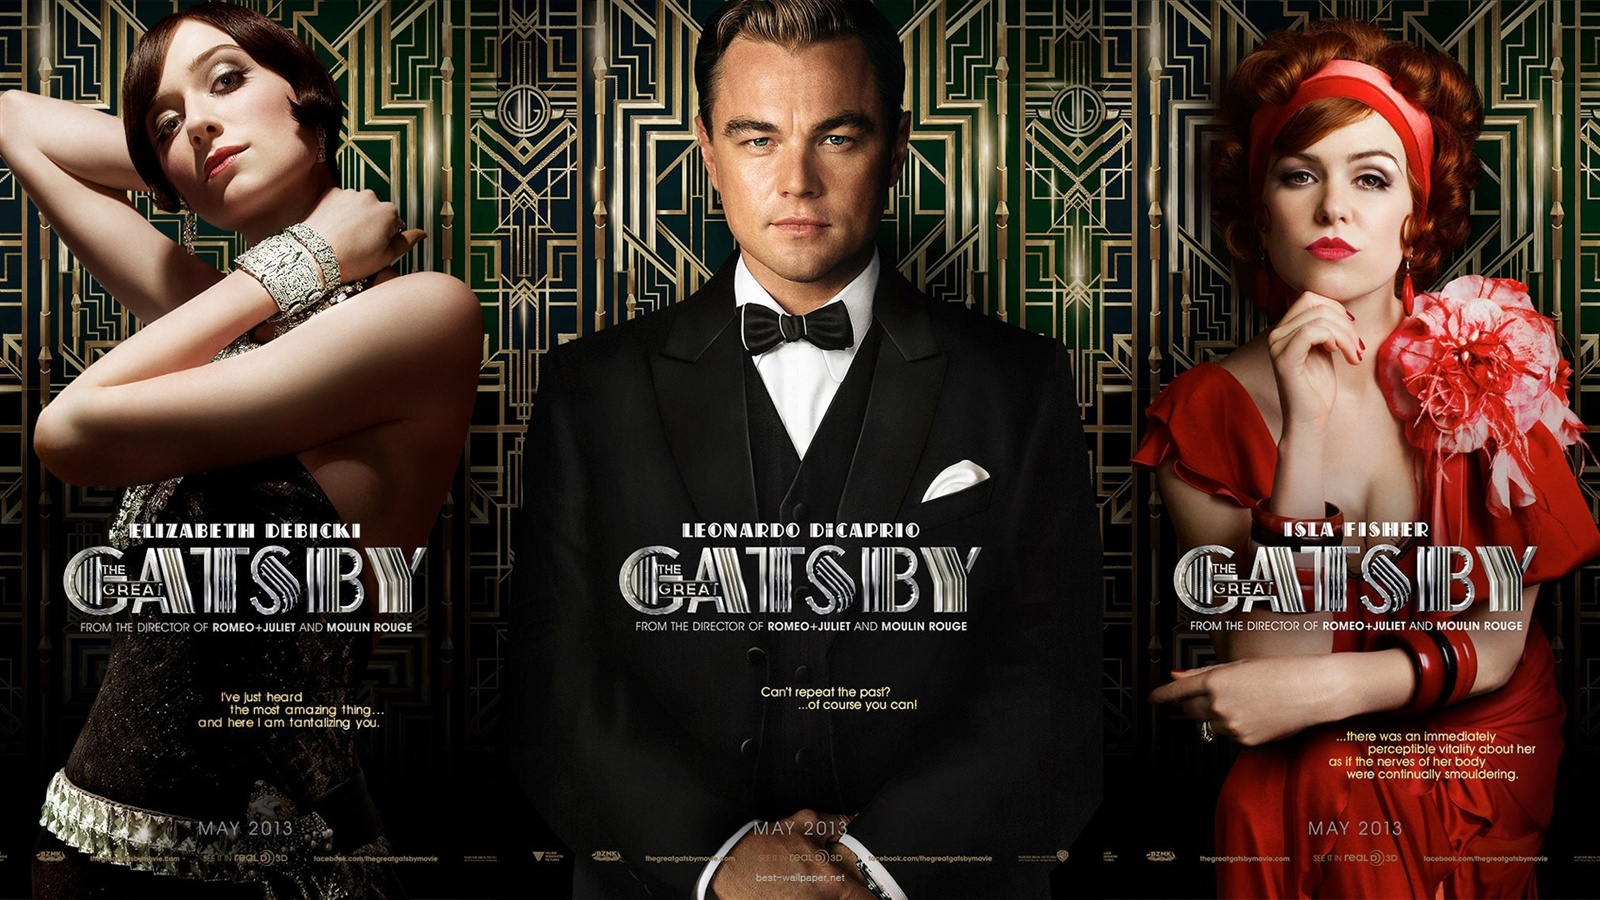 the great gatsby mwds Elese chen, aryana corona, shontae salmon band 5 ap english: major works data sheet title: the great gatsby author: f scott fitzgerald date of publication: 1925.